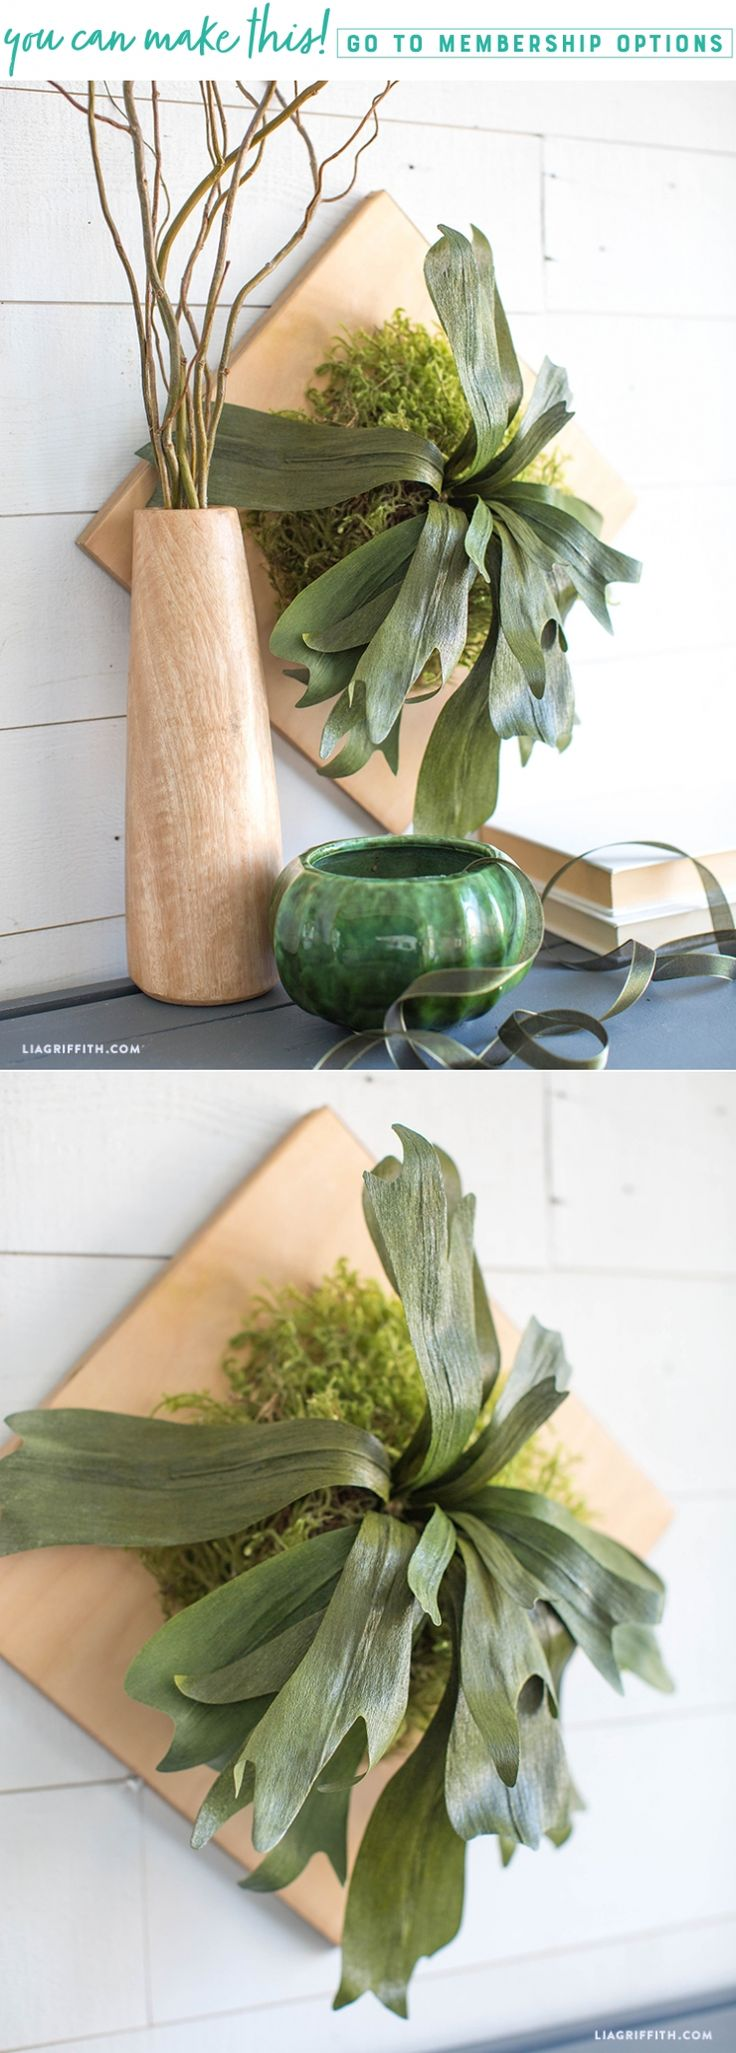 (Fern)ished by the Forest 🌿🌲 Mount this staghorn fern inside your own home to give your walls some greenery and fresh air. We used our double-sided crepe paper and mod podge to achieve this unbelievably realistic gloss texture. We'll guide you through this technique here https://liagriffith.com/mounted-crepe-paper-staghorn-fern/⠀⠀⠀⠀⠀⠀⠀⠀⠀ *⠀⠀⠀⠀⠀⠀⠀⠀⠀ *⠀⠀⠀⠀⠀⠀⠀⠀⠀ *⠀⠀⠀⠀⠀⠀⠀⠀⠀ #fern #staghorn #forest #forests #diy #diyidea #diyideas #diyproject #diyprojects #diydecor #diyhome #homedecor…